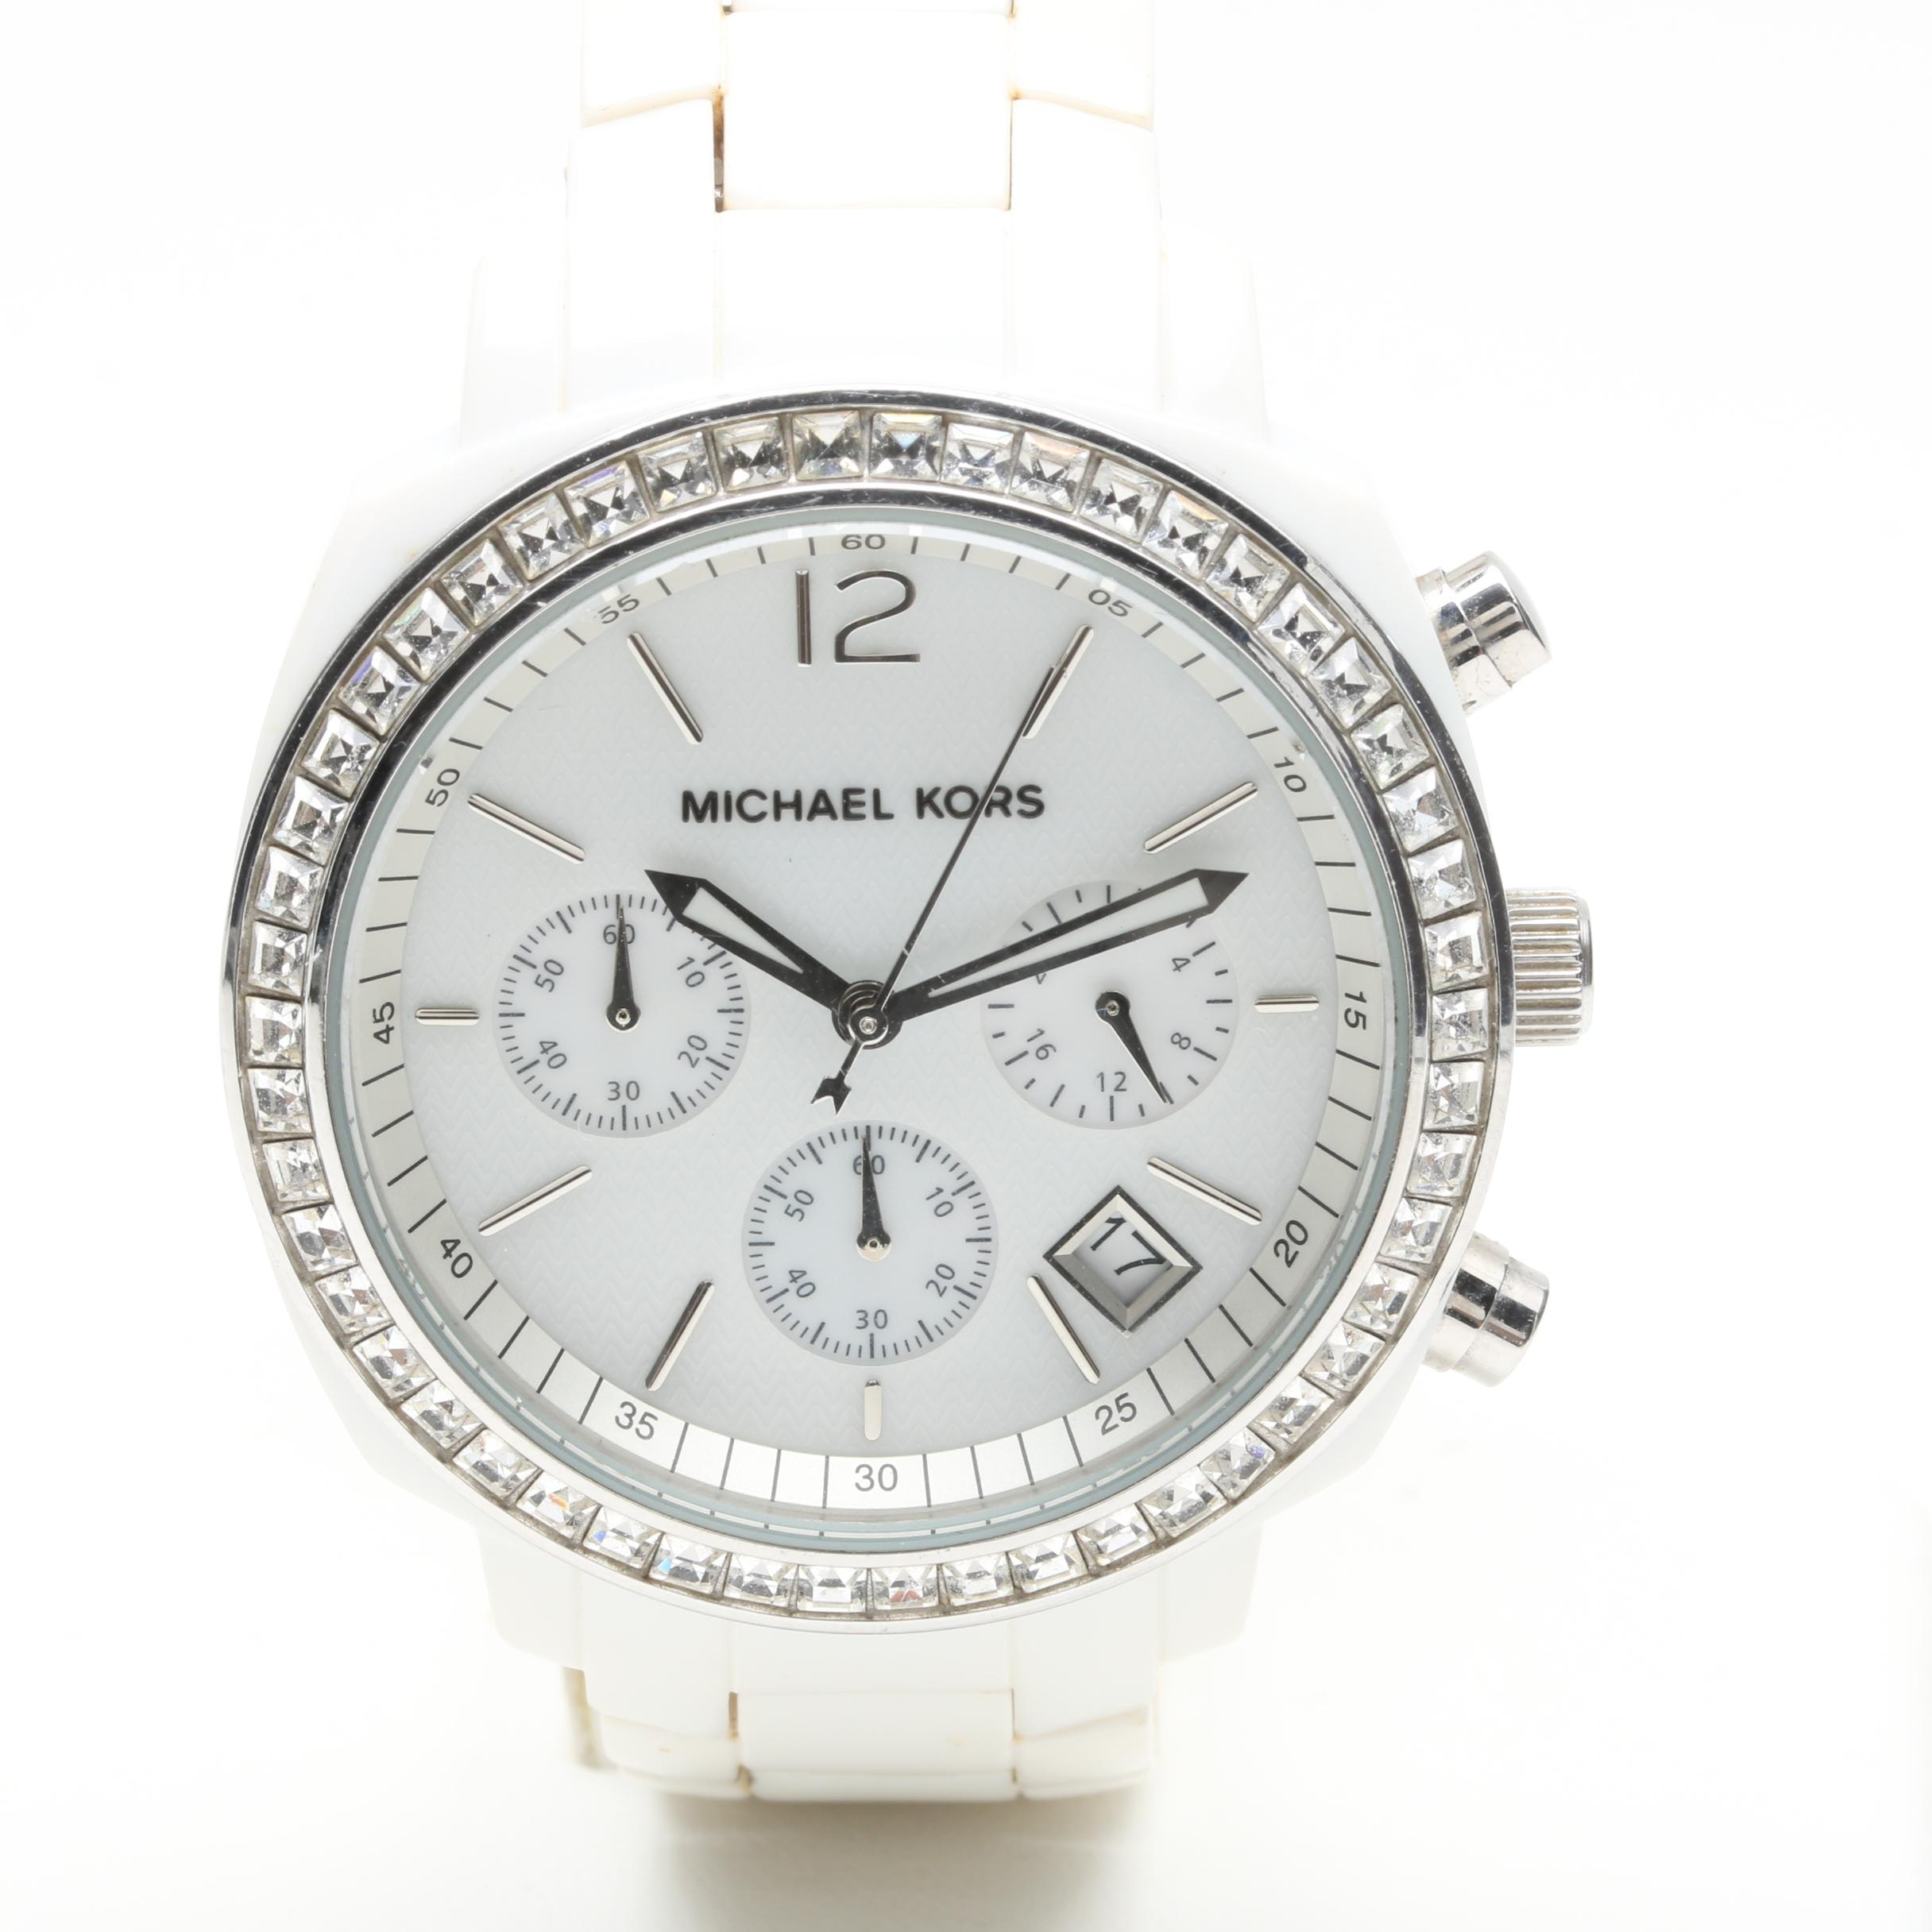 Michael Kors Stainless Steel and Resin Wristwatch